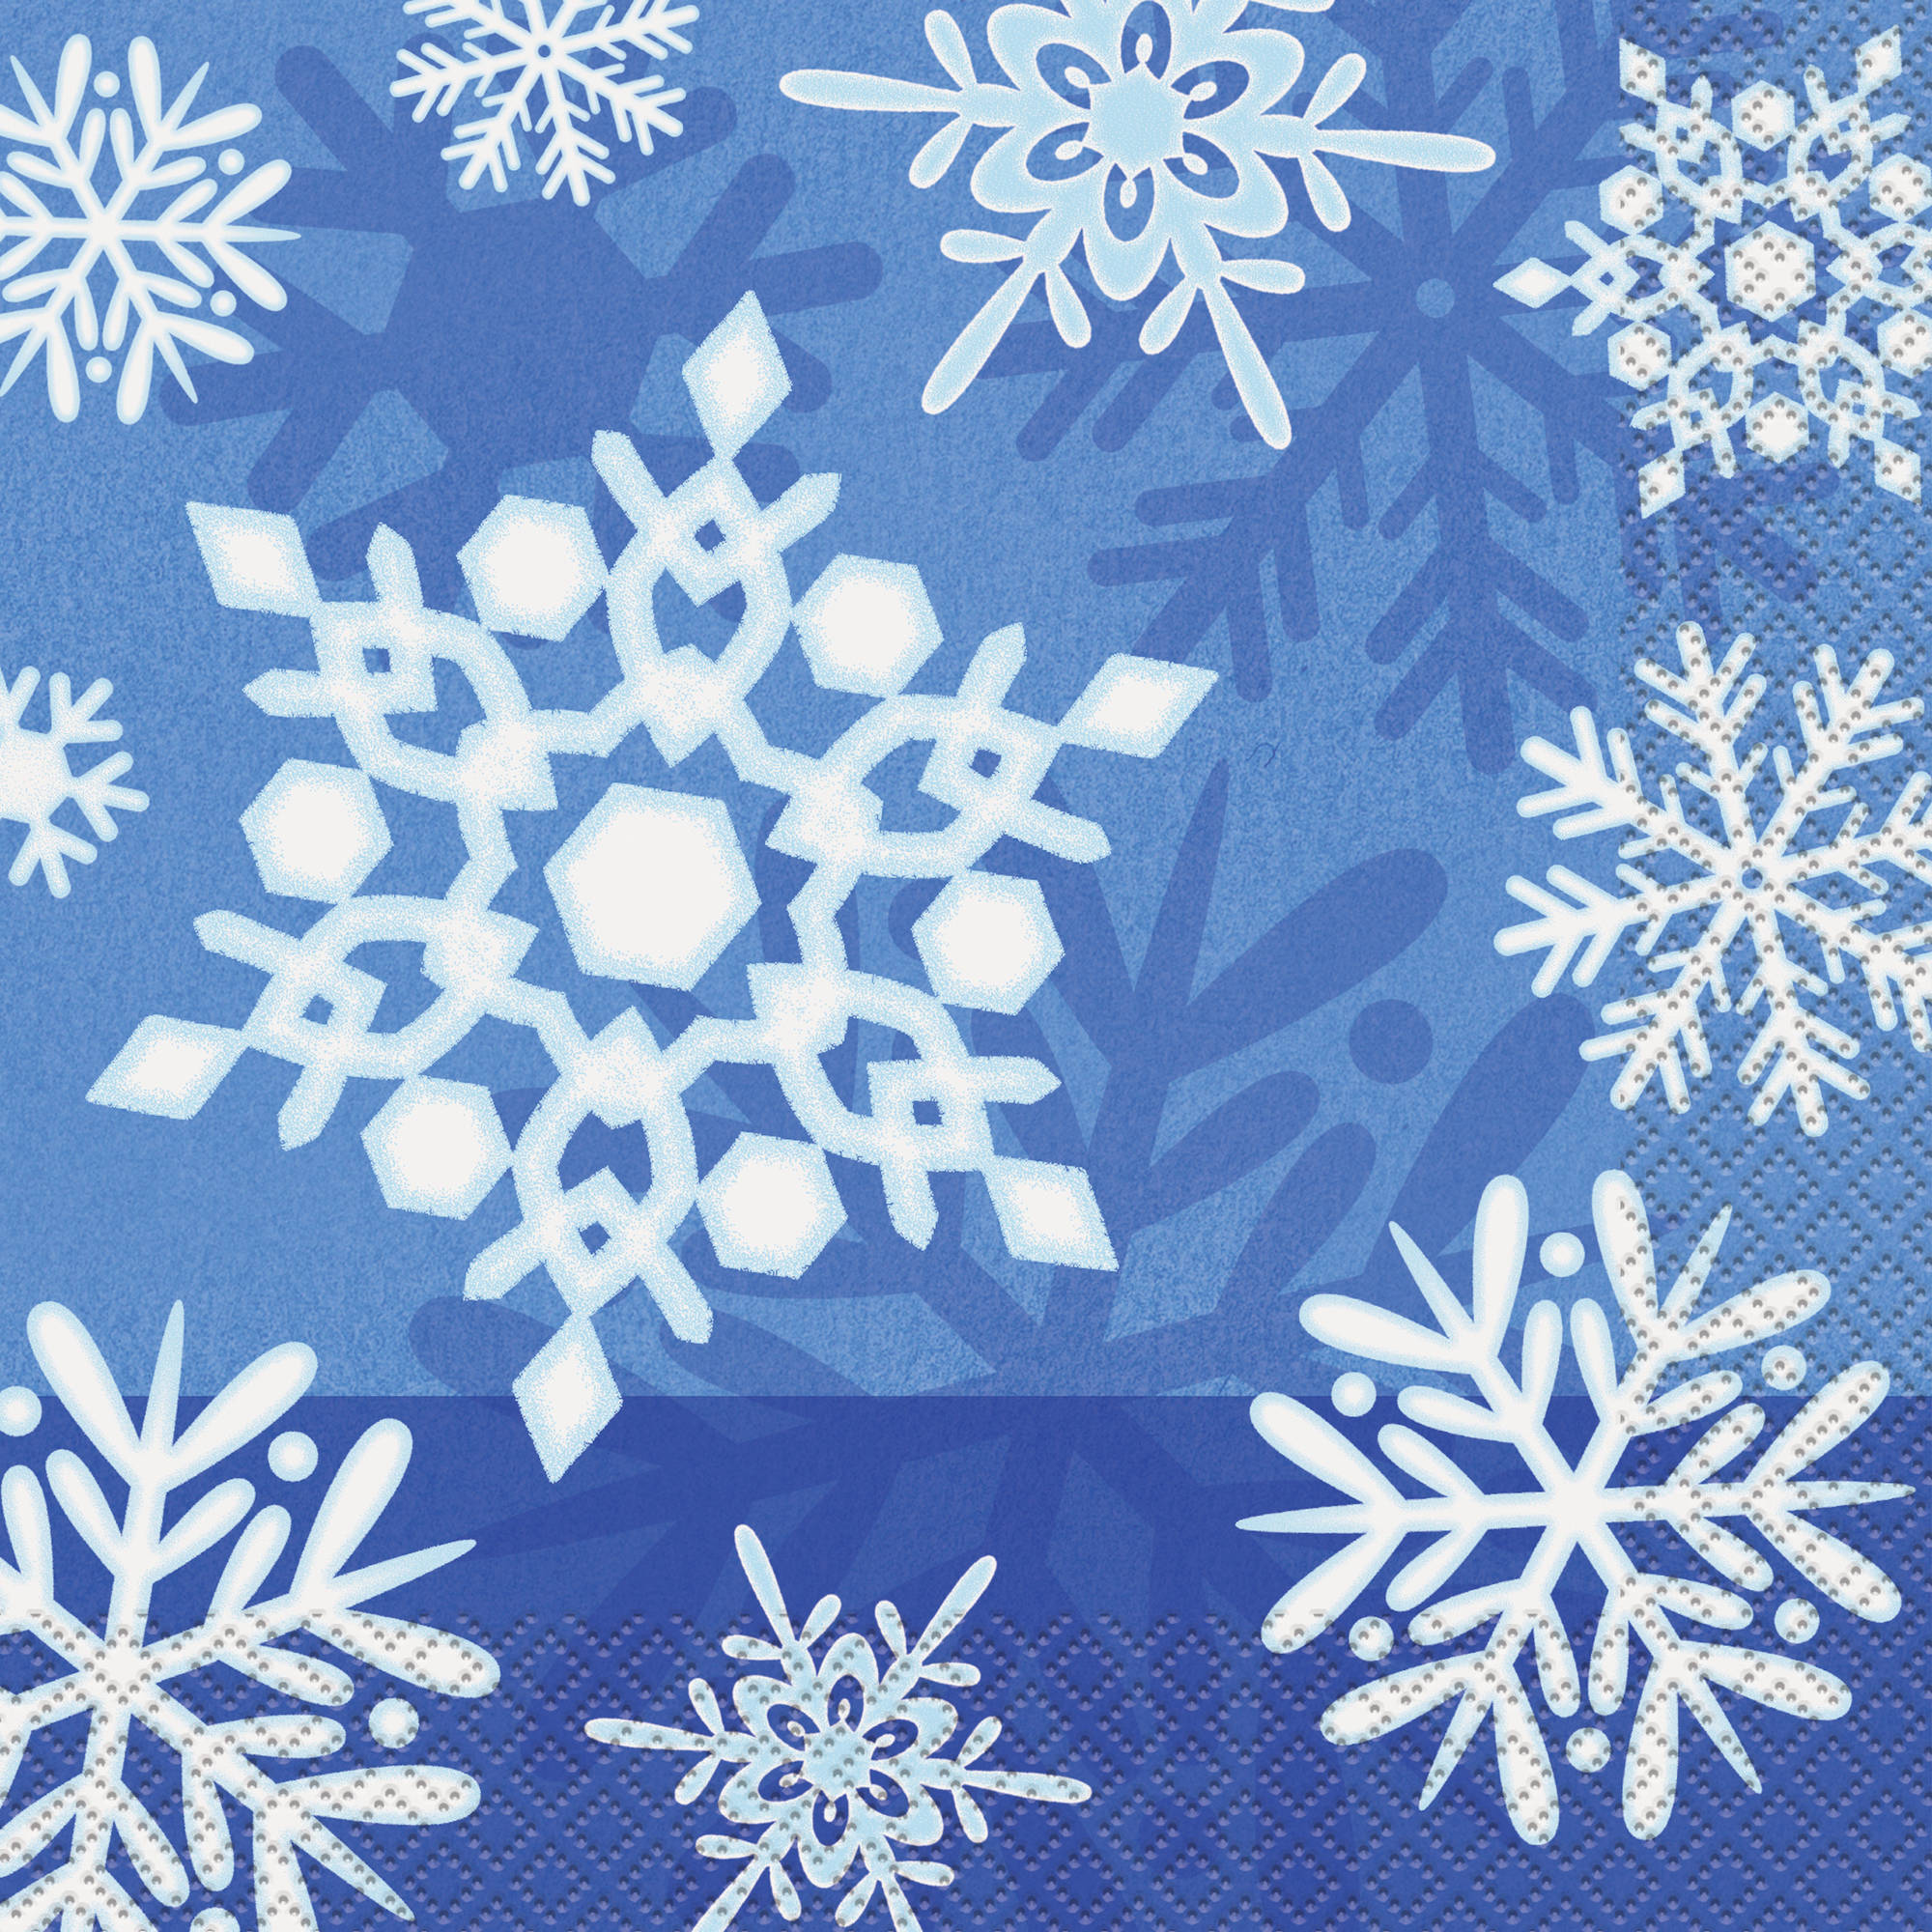 Winter Snowflake Holiday Luncheon Napkins, 16-Count